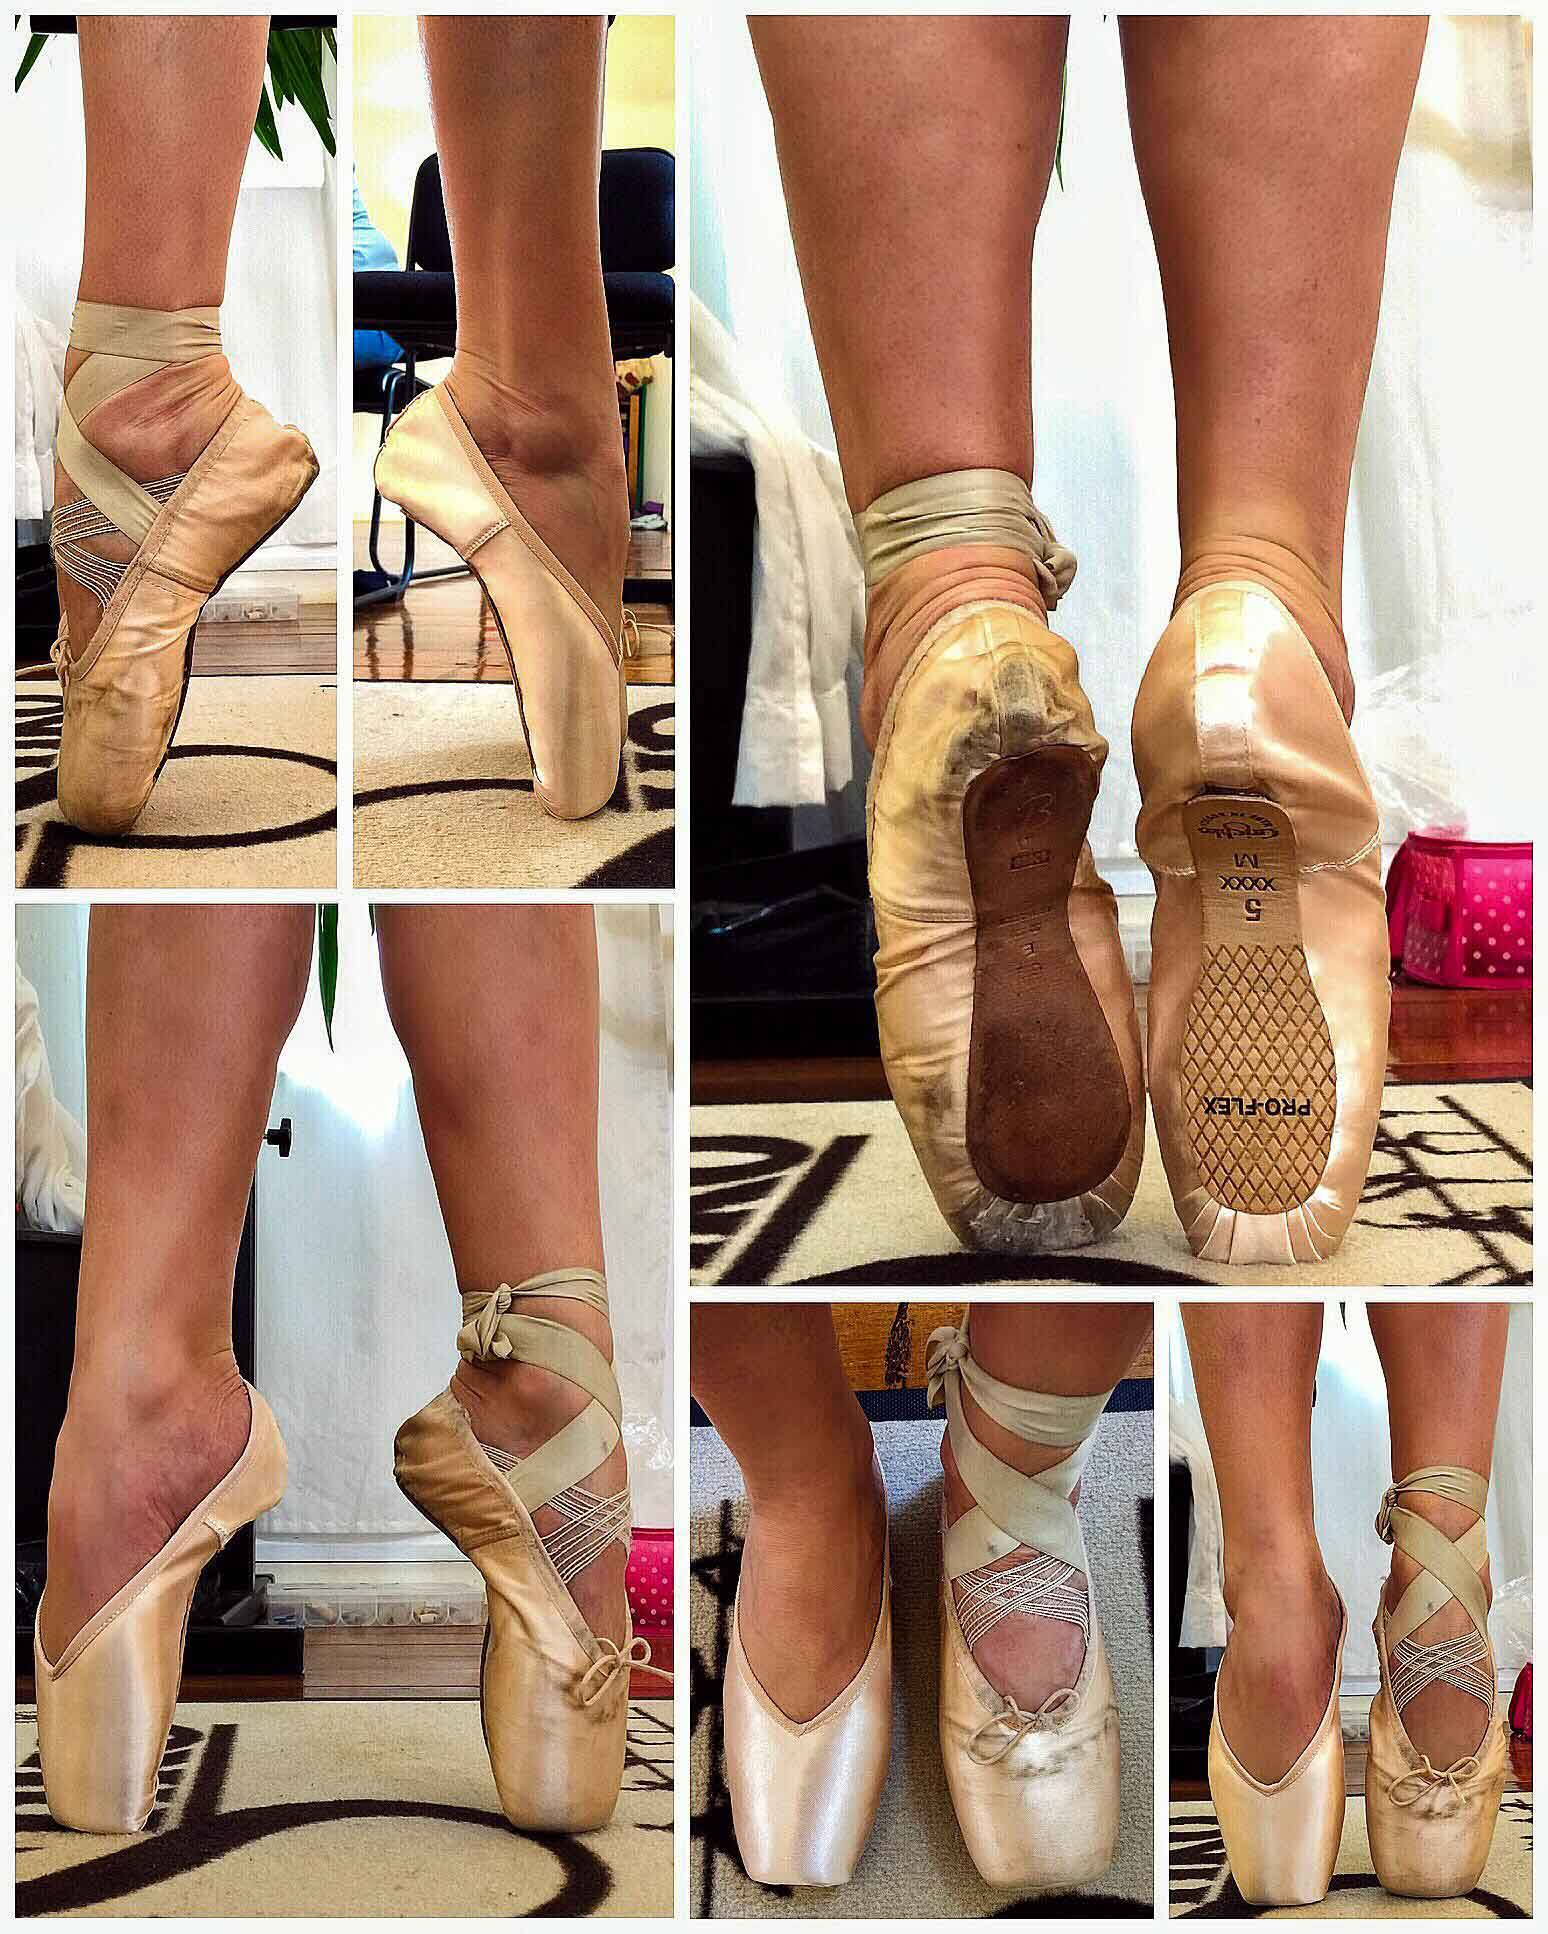 Pointe Shoe Fitting Photos Straight To The Pointe